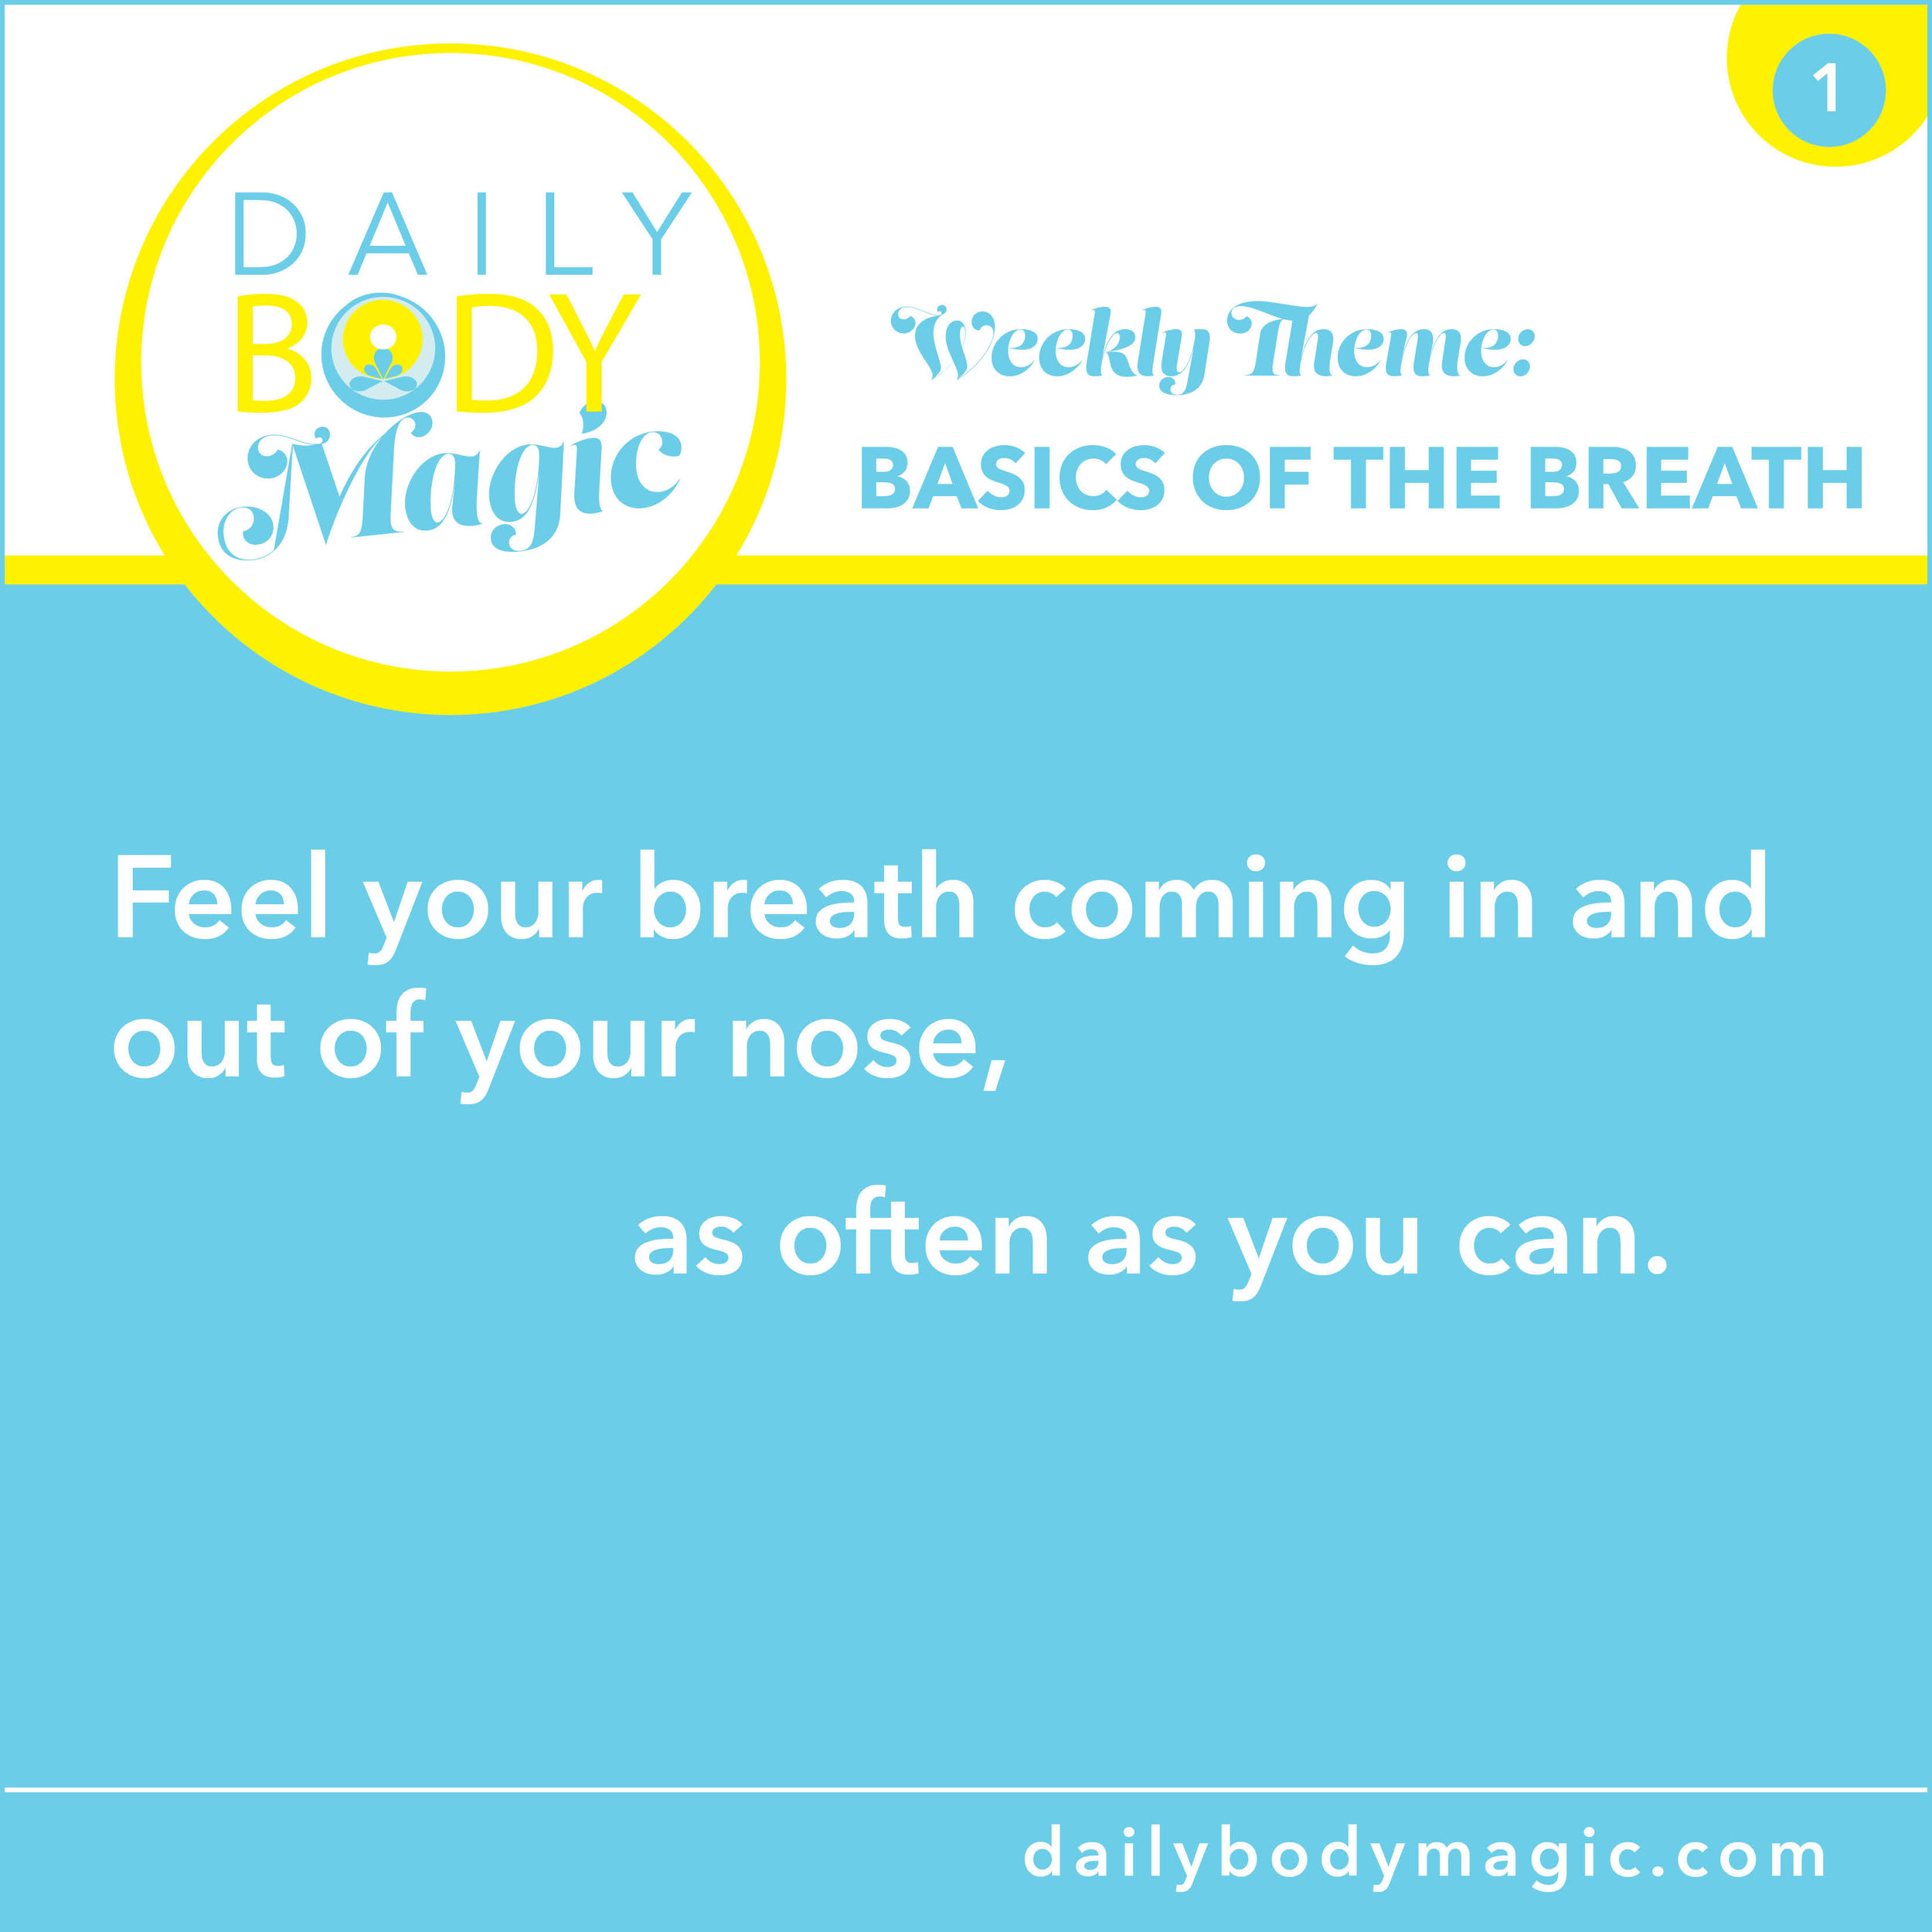 Daily Body Magic - 1.jpg